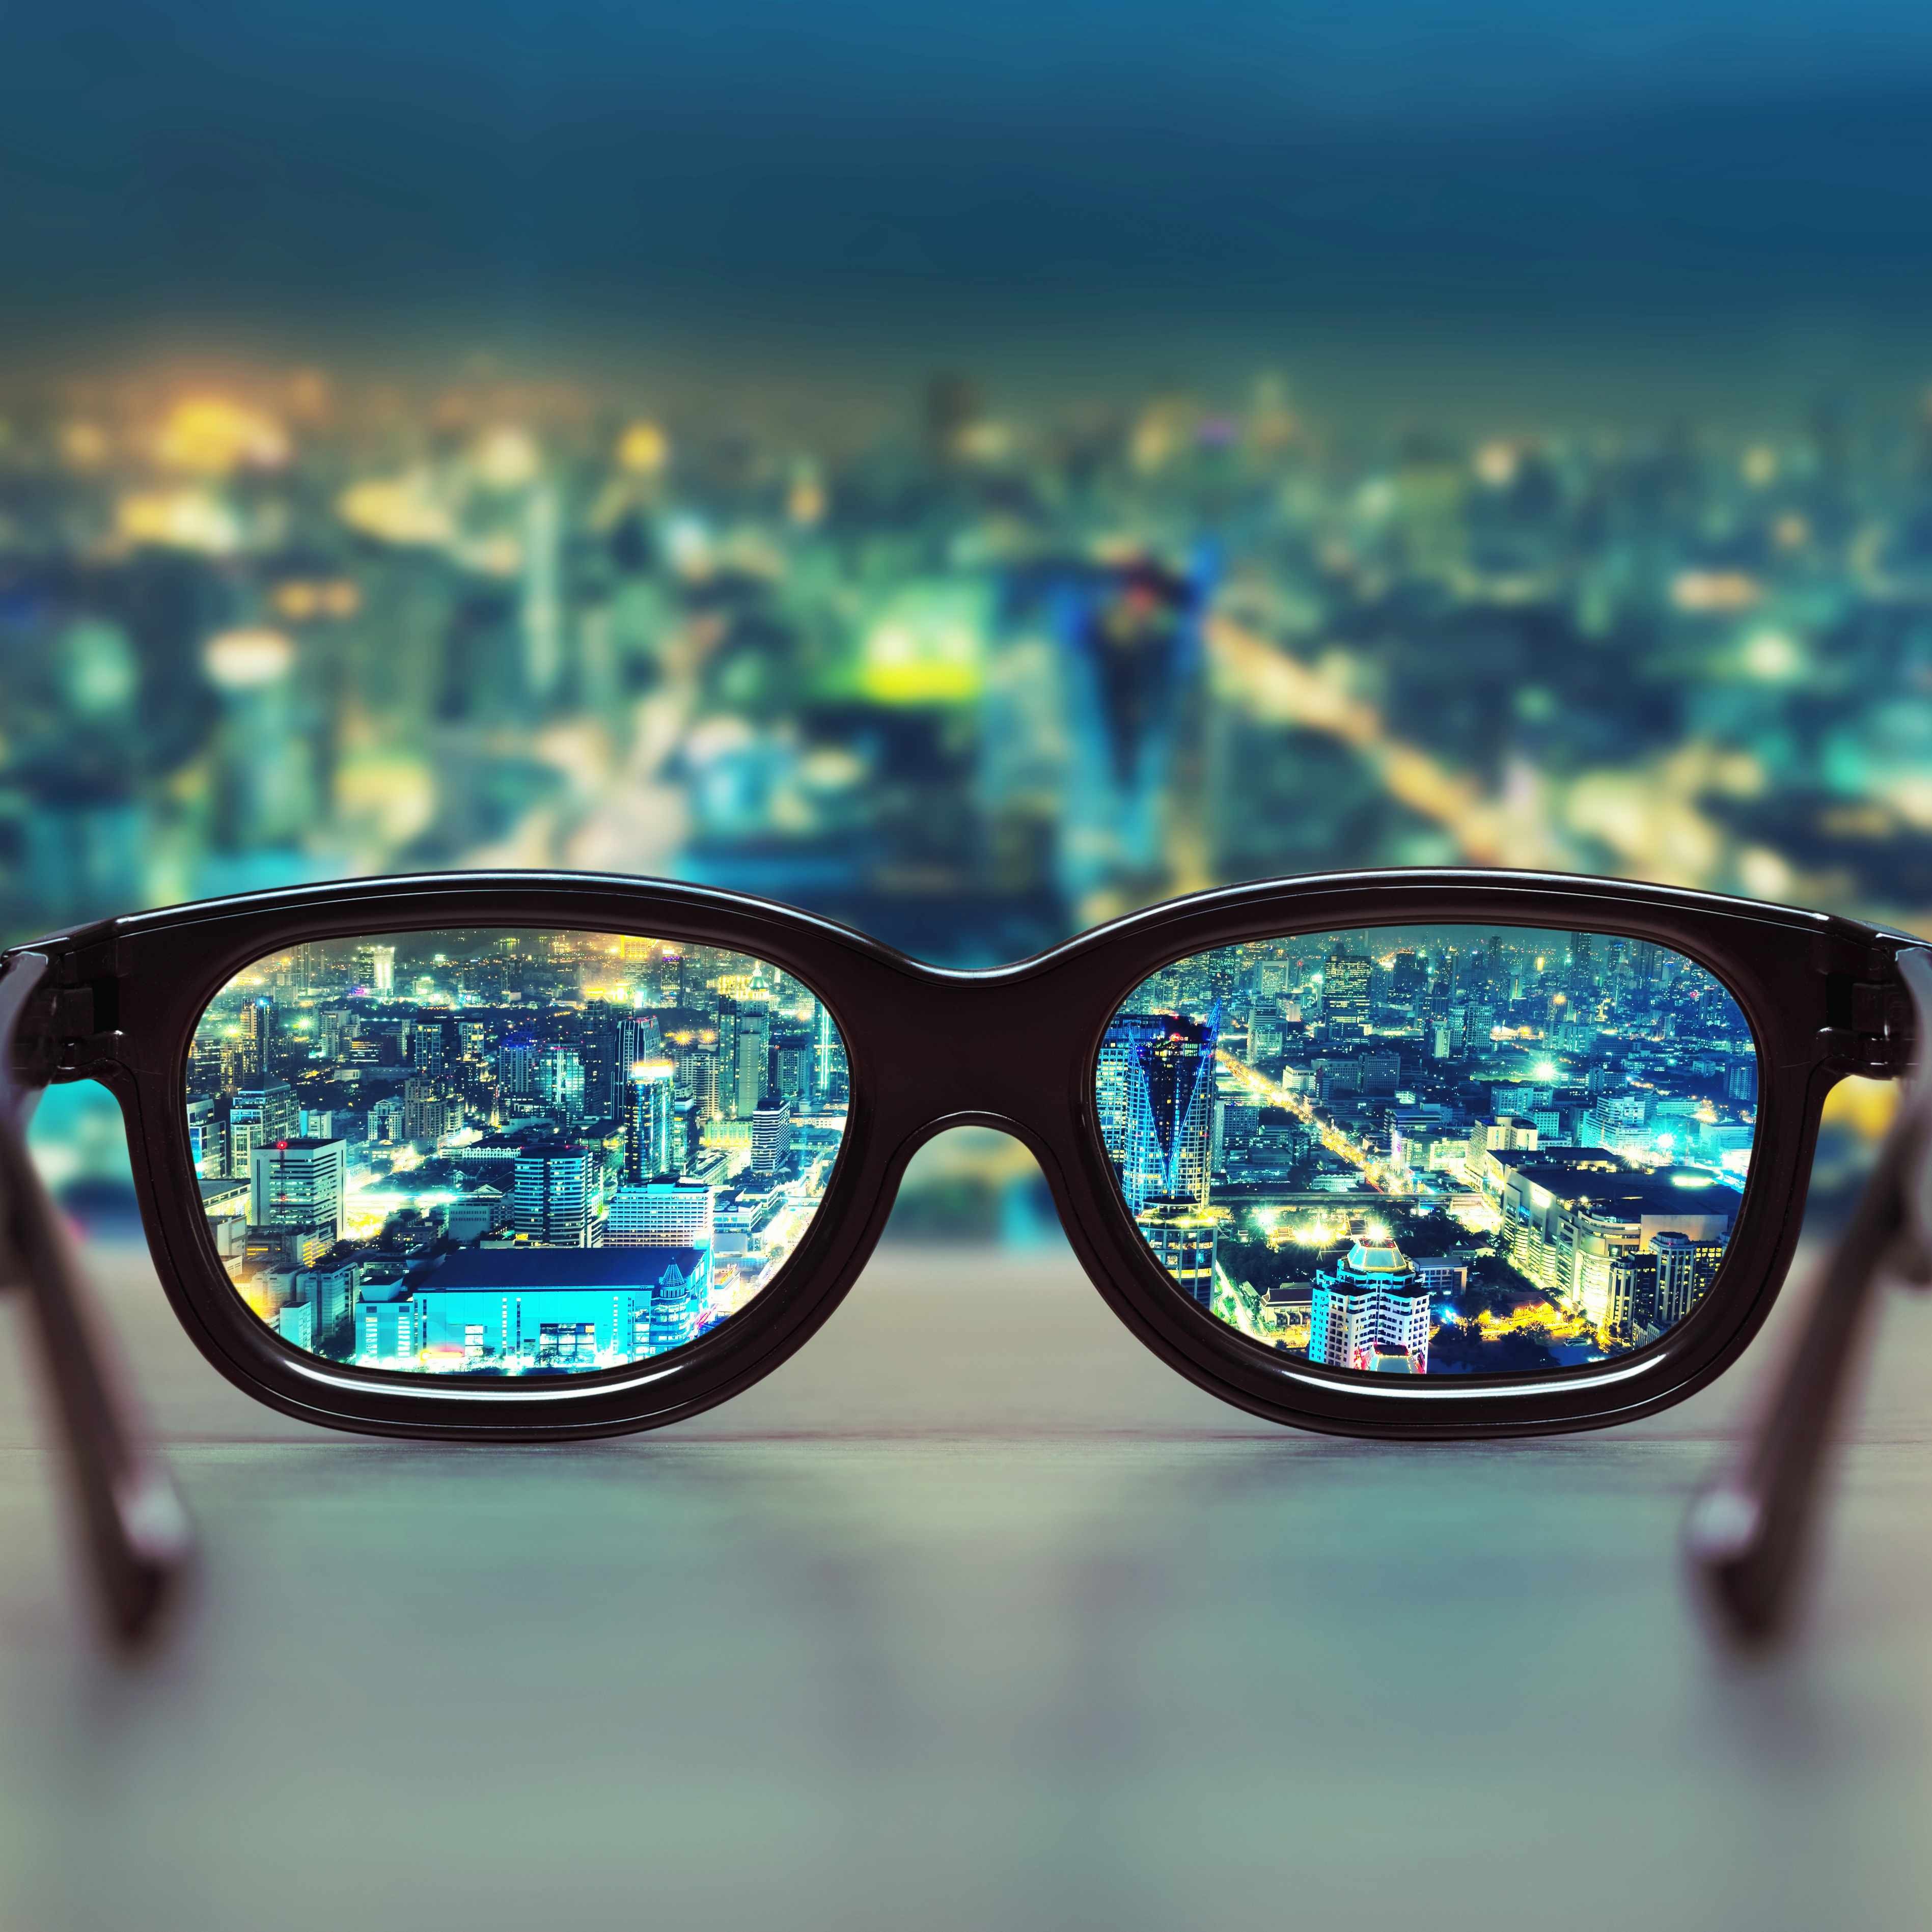 a pair of eye glasses on a windwosill with a night scene of a city in the background